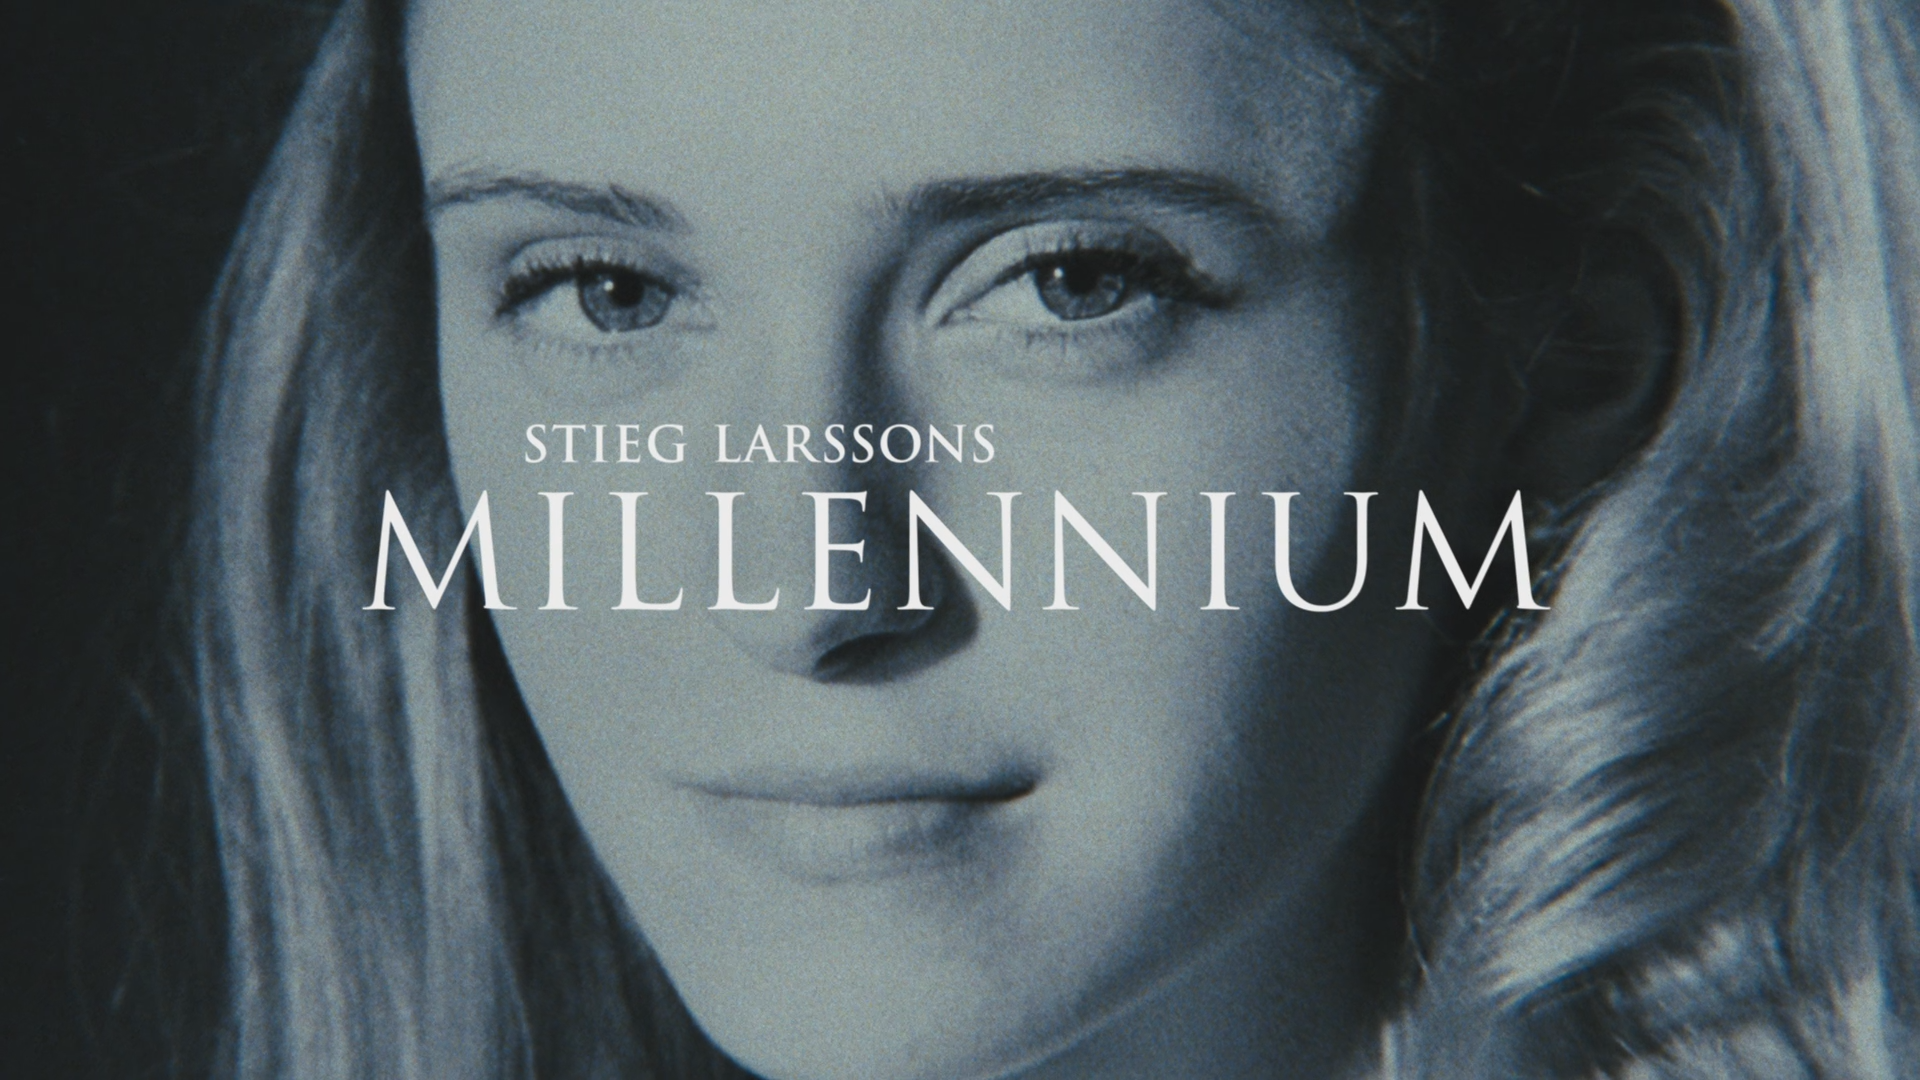 Stieg Larsson Millenium sequel 'That Which Does Not Kill Us' out in August